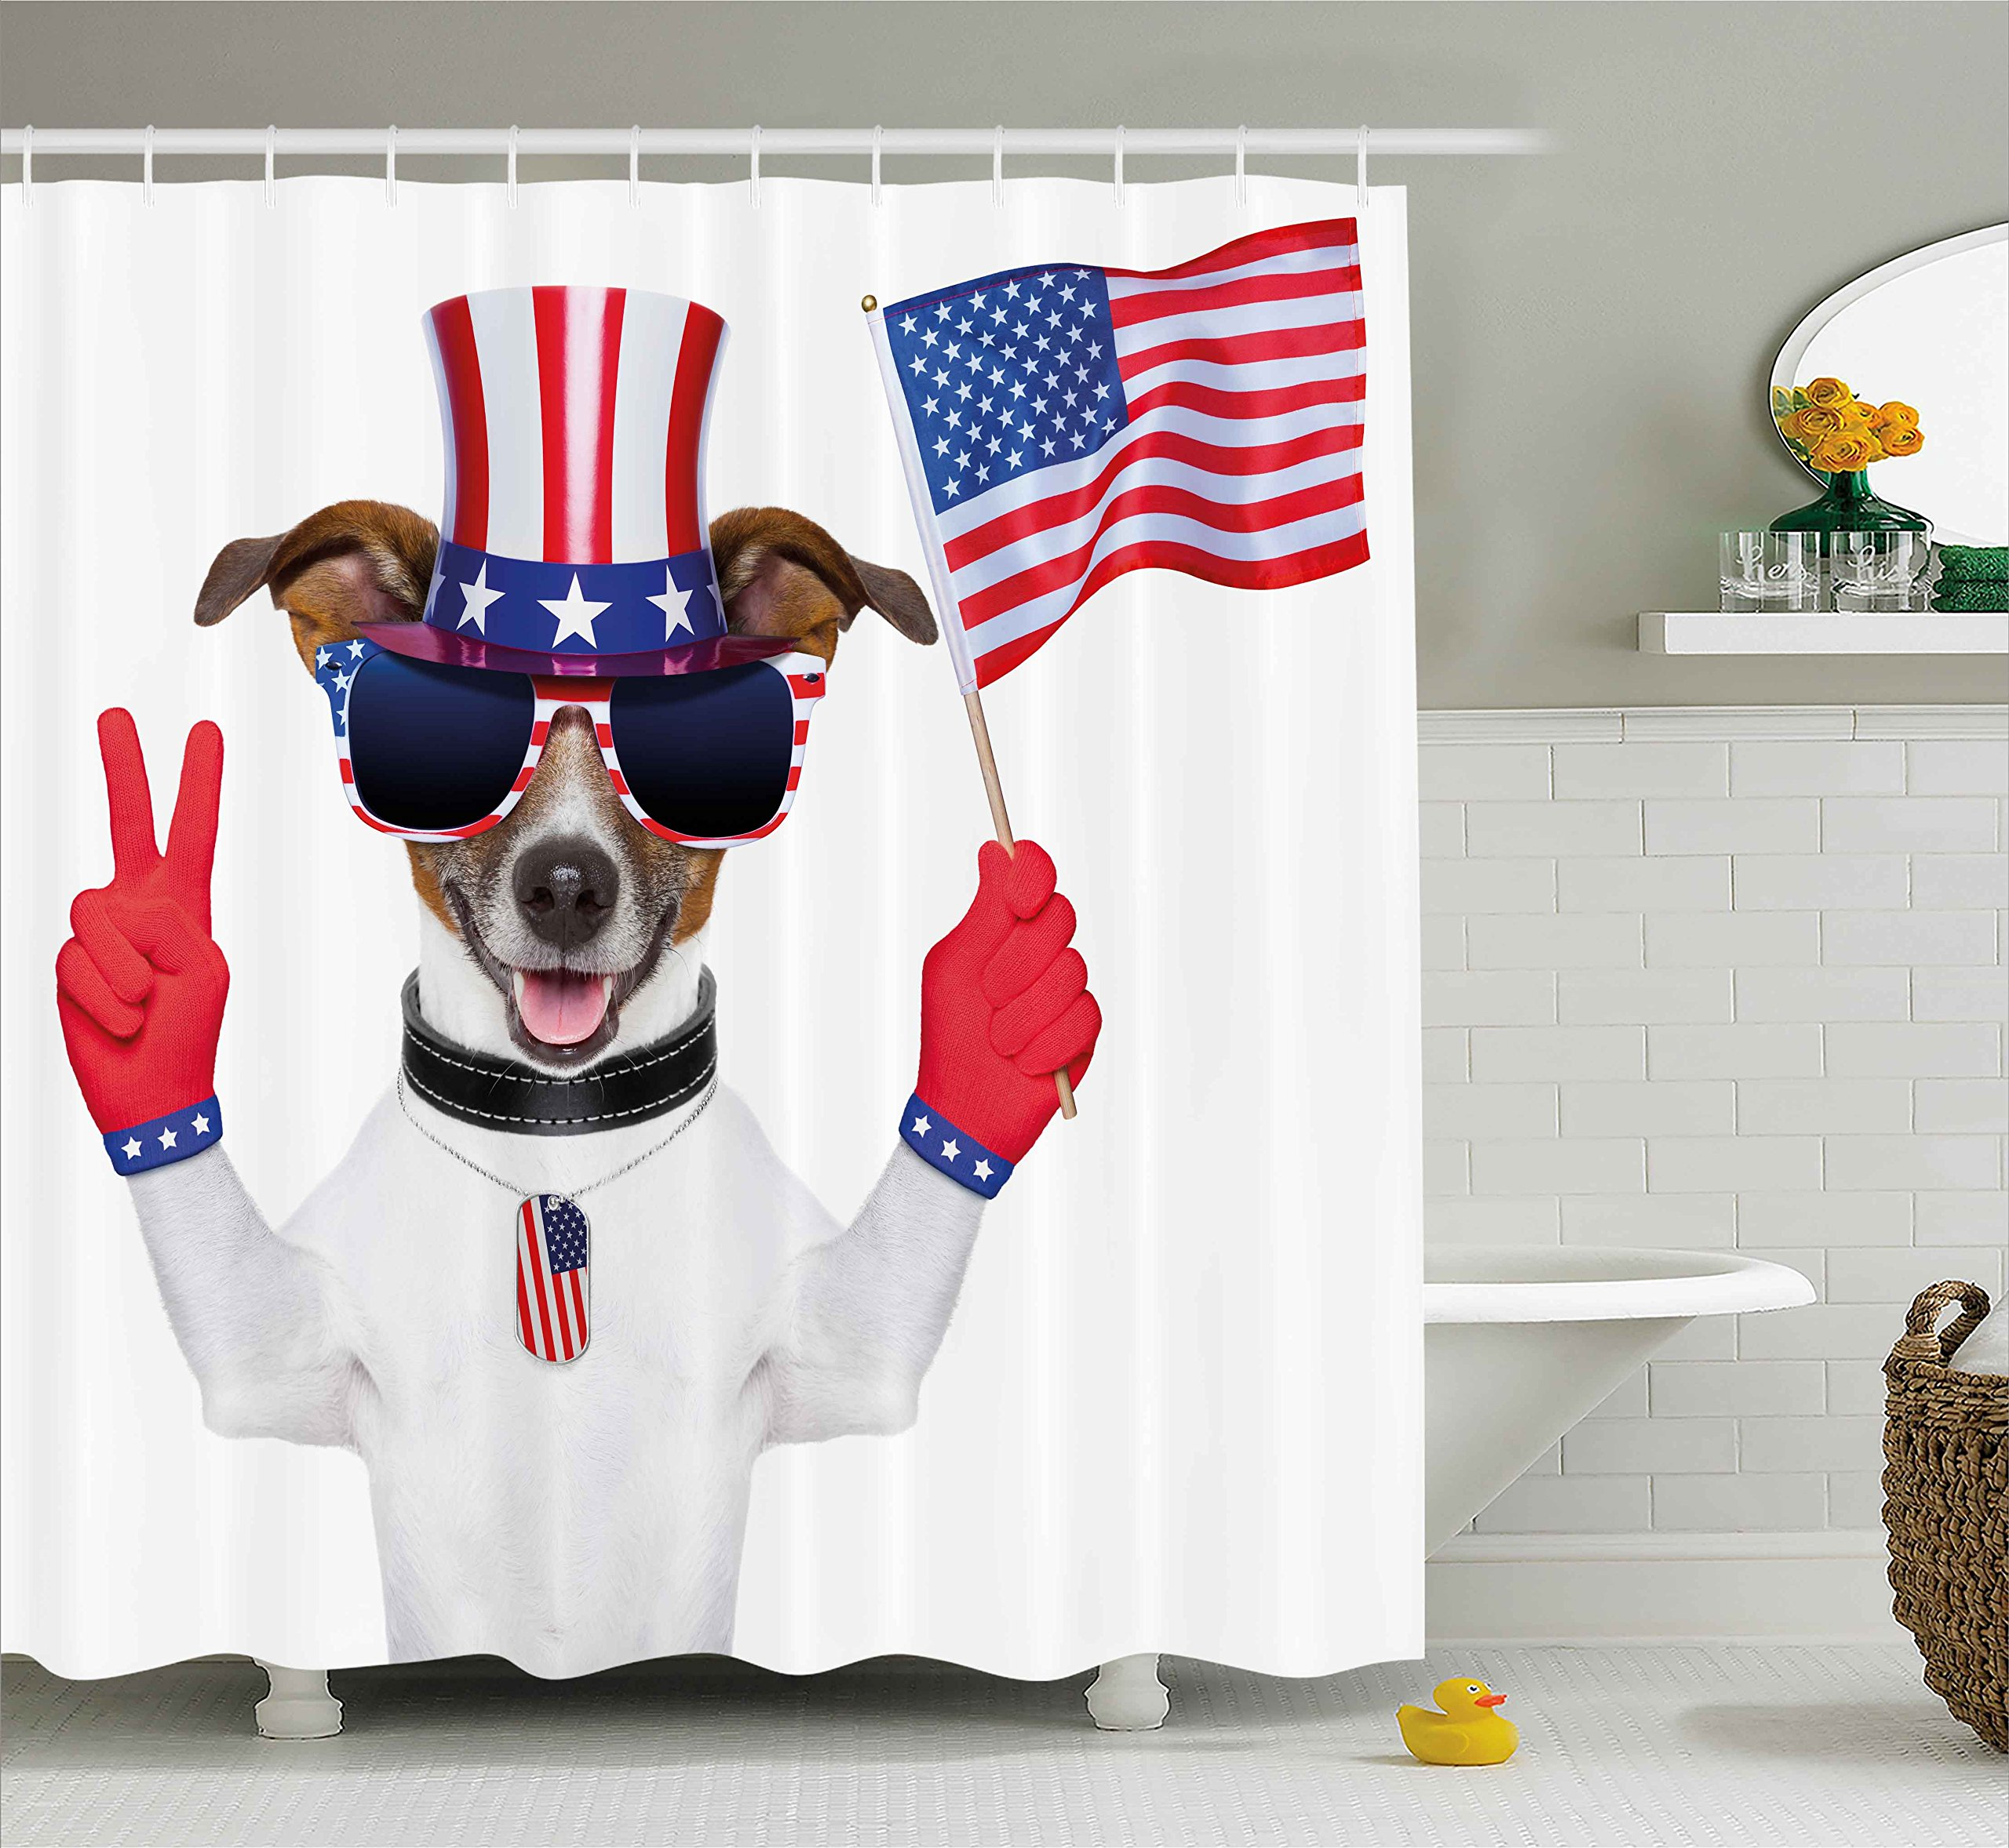 Ambesonne 4th of July Shower Curtain, Funny Pet Dog with an Uncle Sam Hat Holding a Peace Sign and an American Flag, Fabric Bathroom Decor Set with Hooks, 70 inches, Multicolor